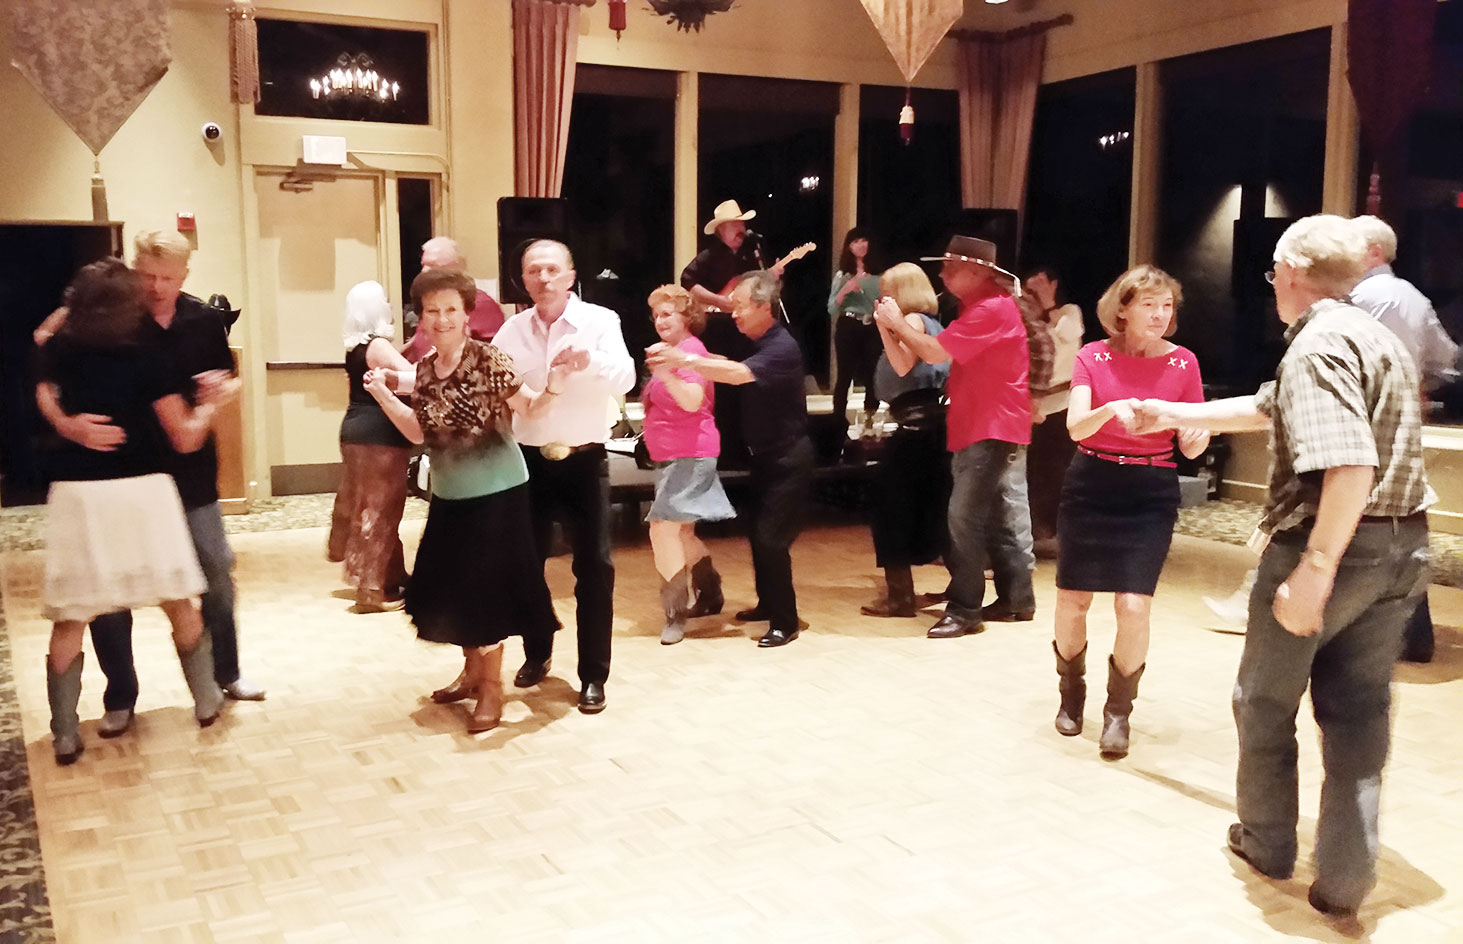 Dancing keeps you young at heart.